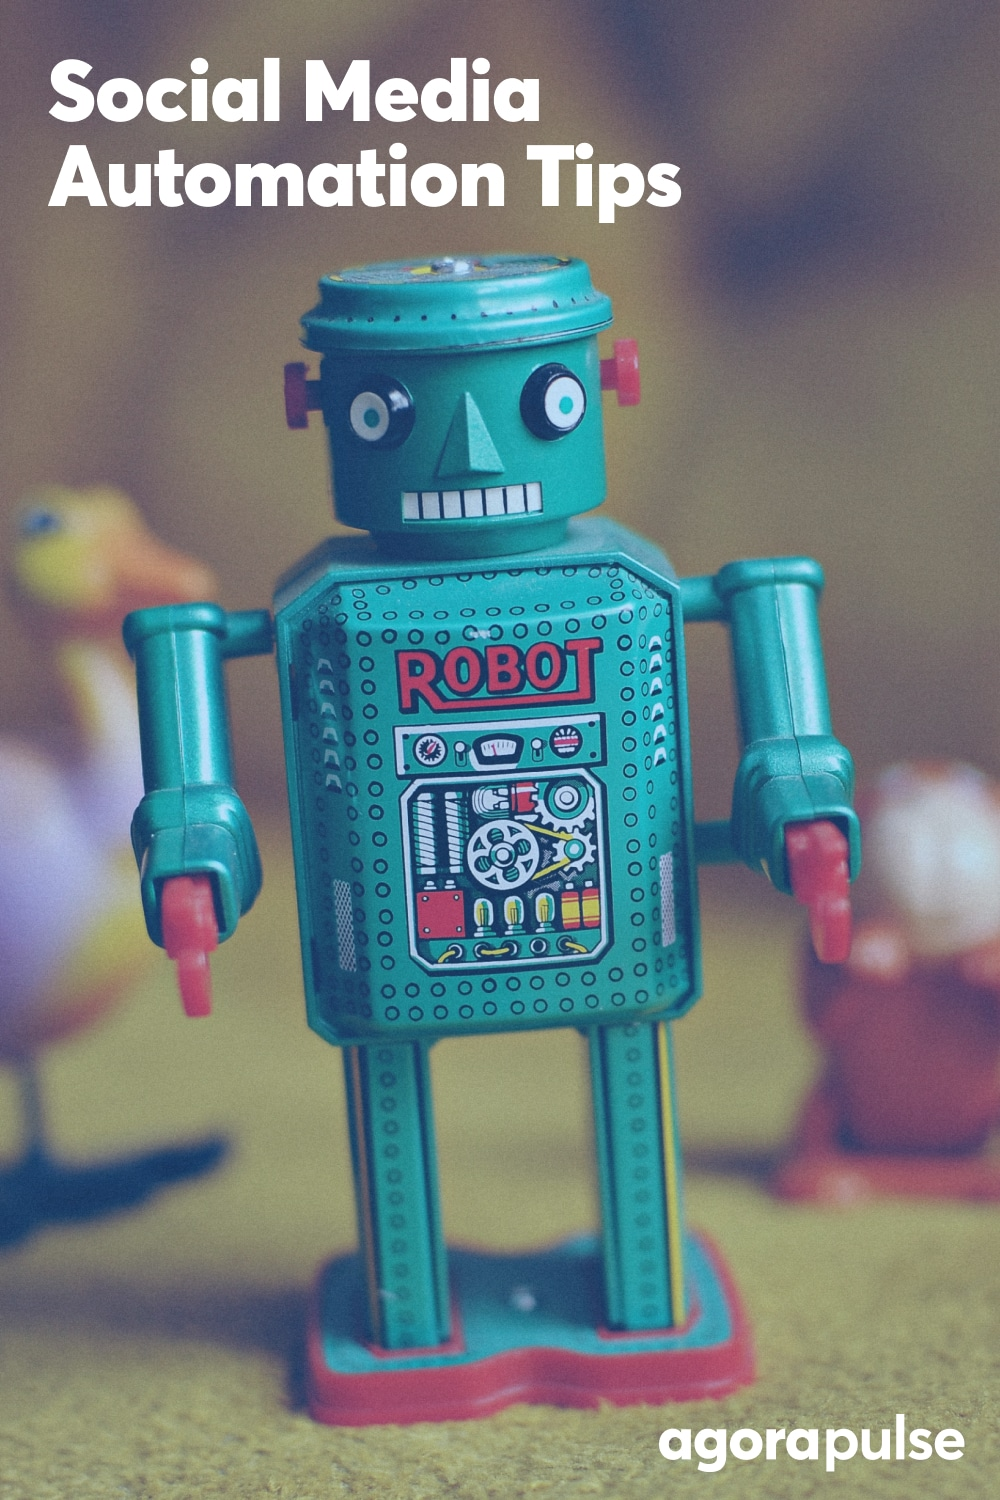 Social Media Automation: How to Do It Well and What to Avoid